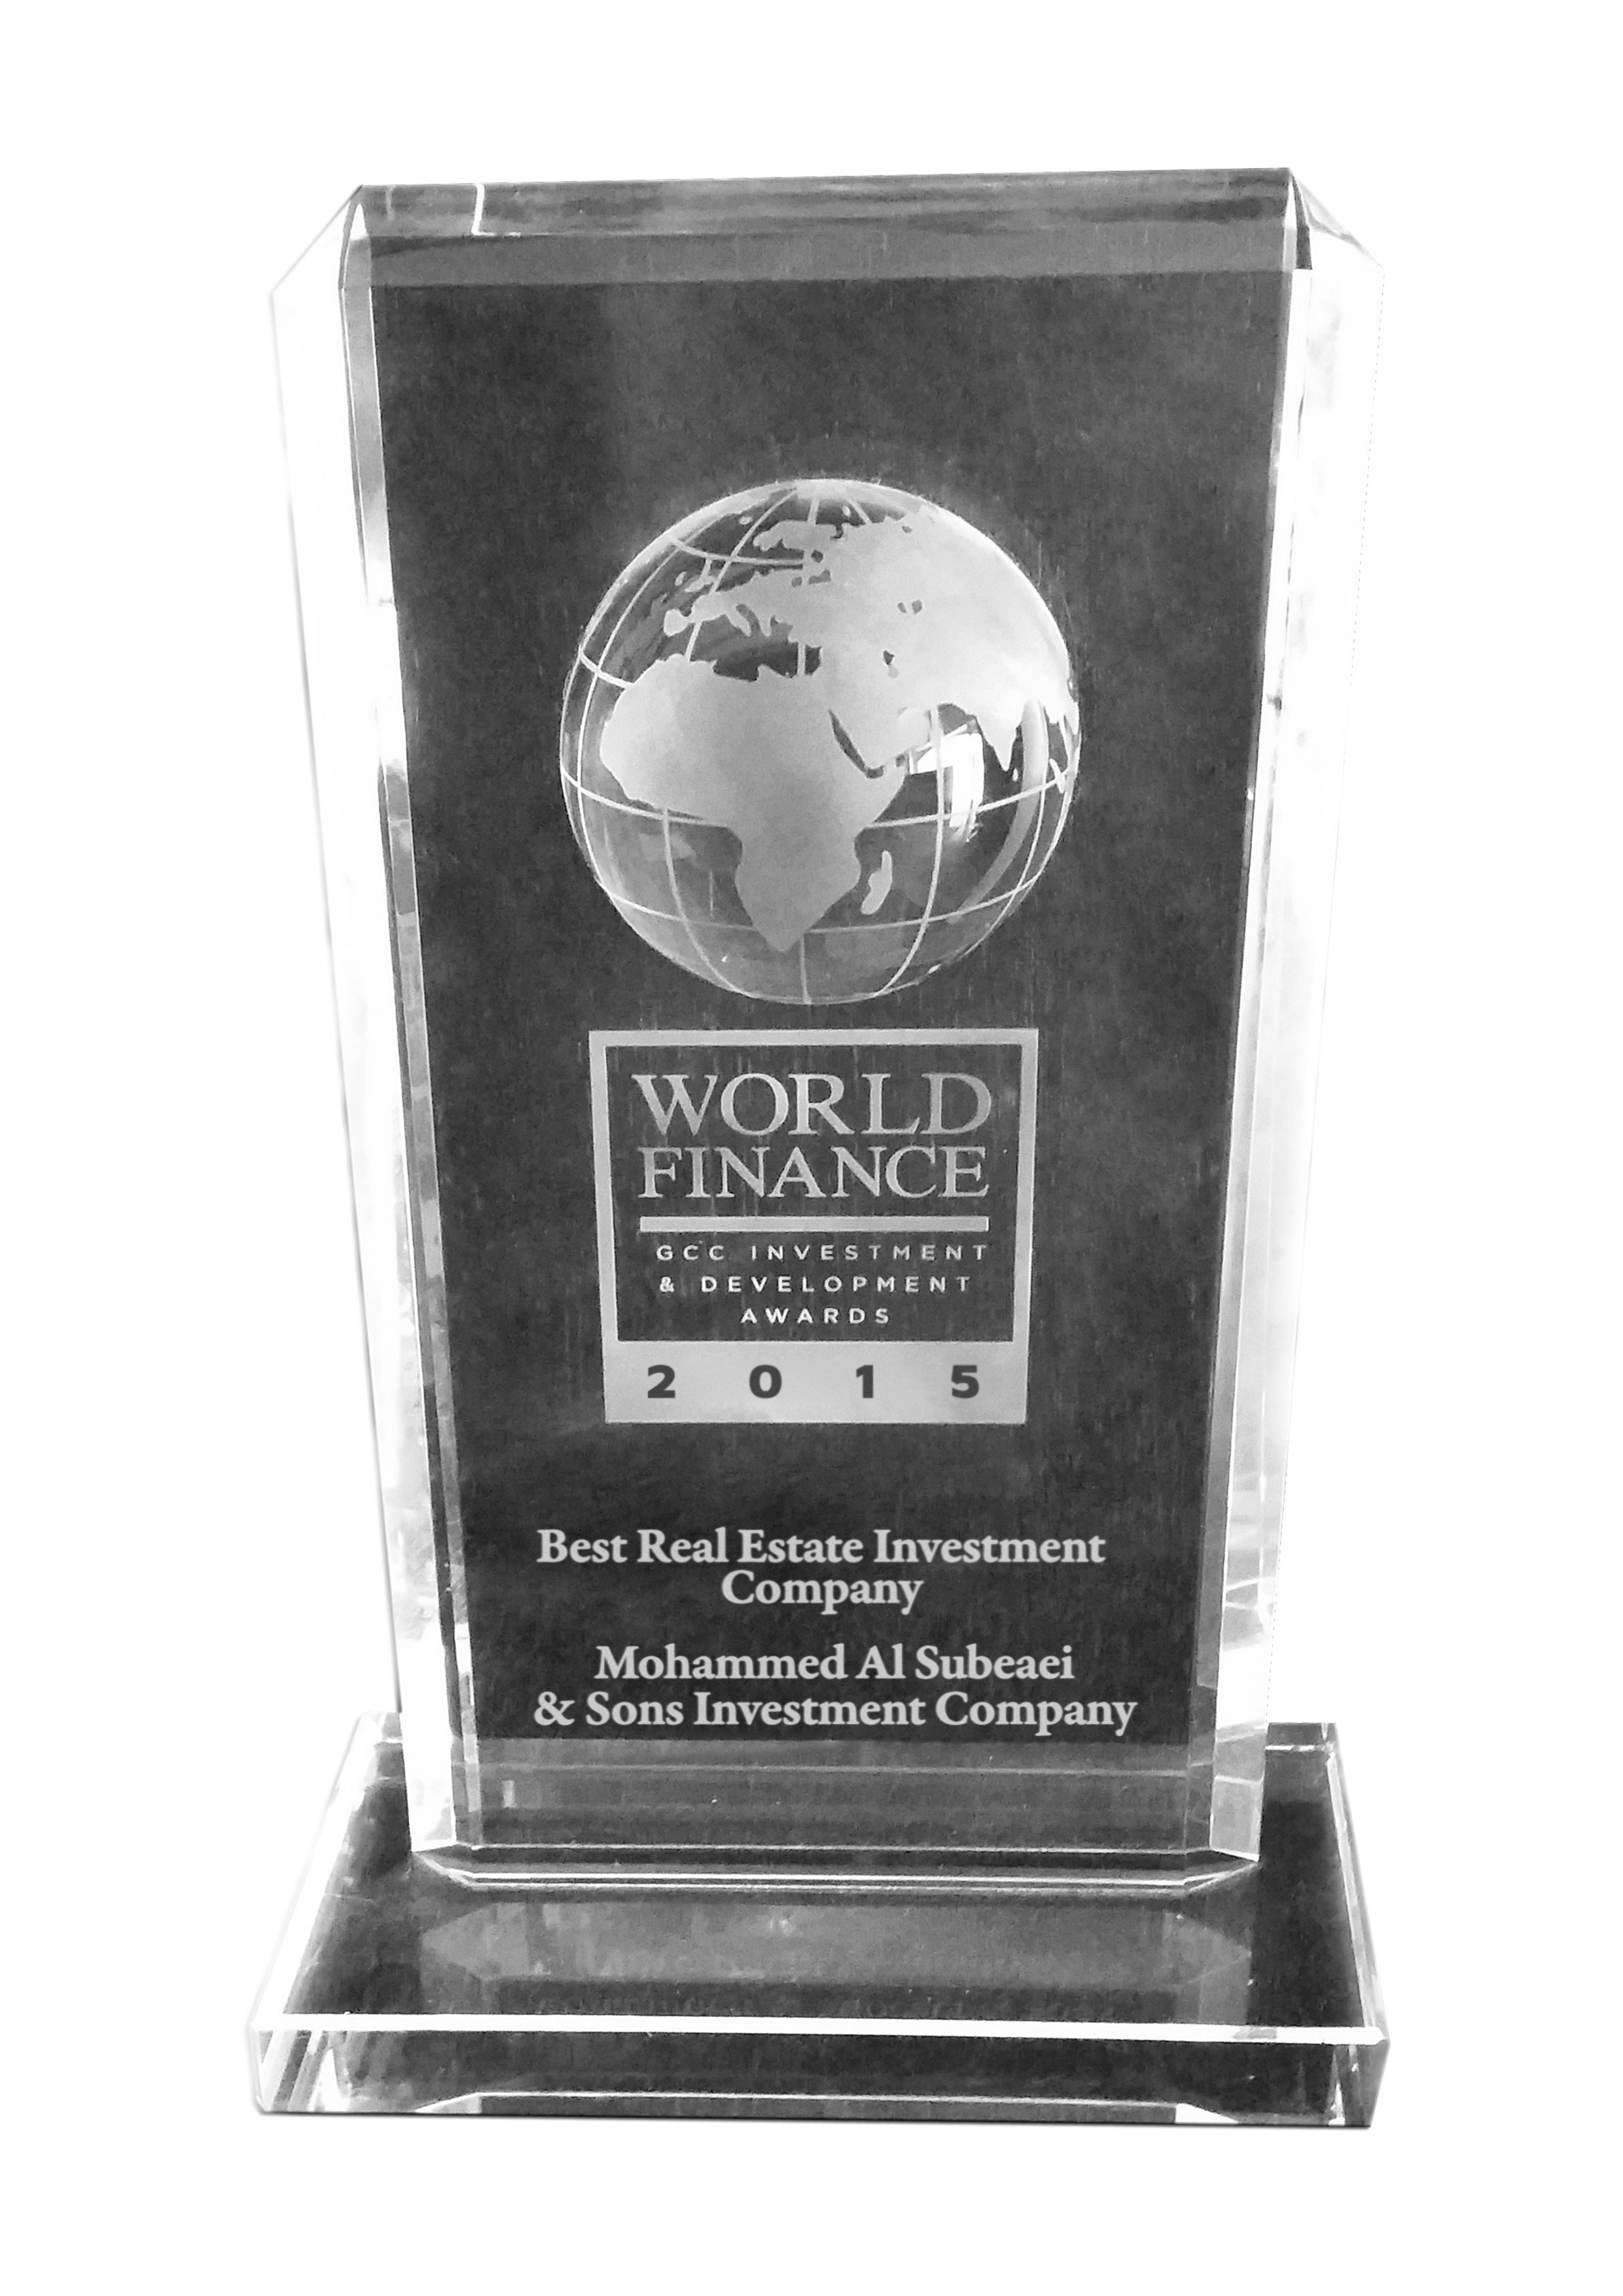 Best Real Estate Investment Company 2015